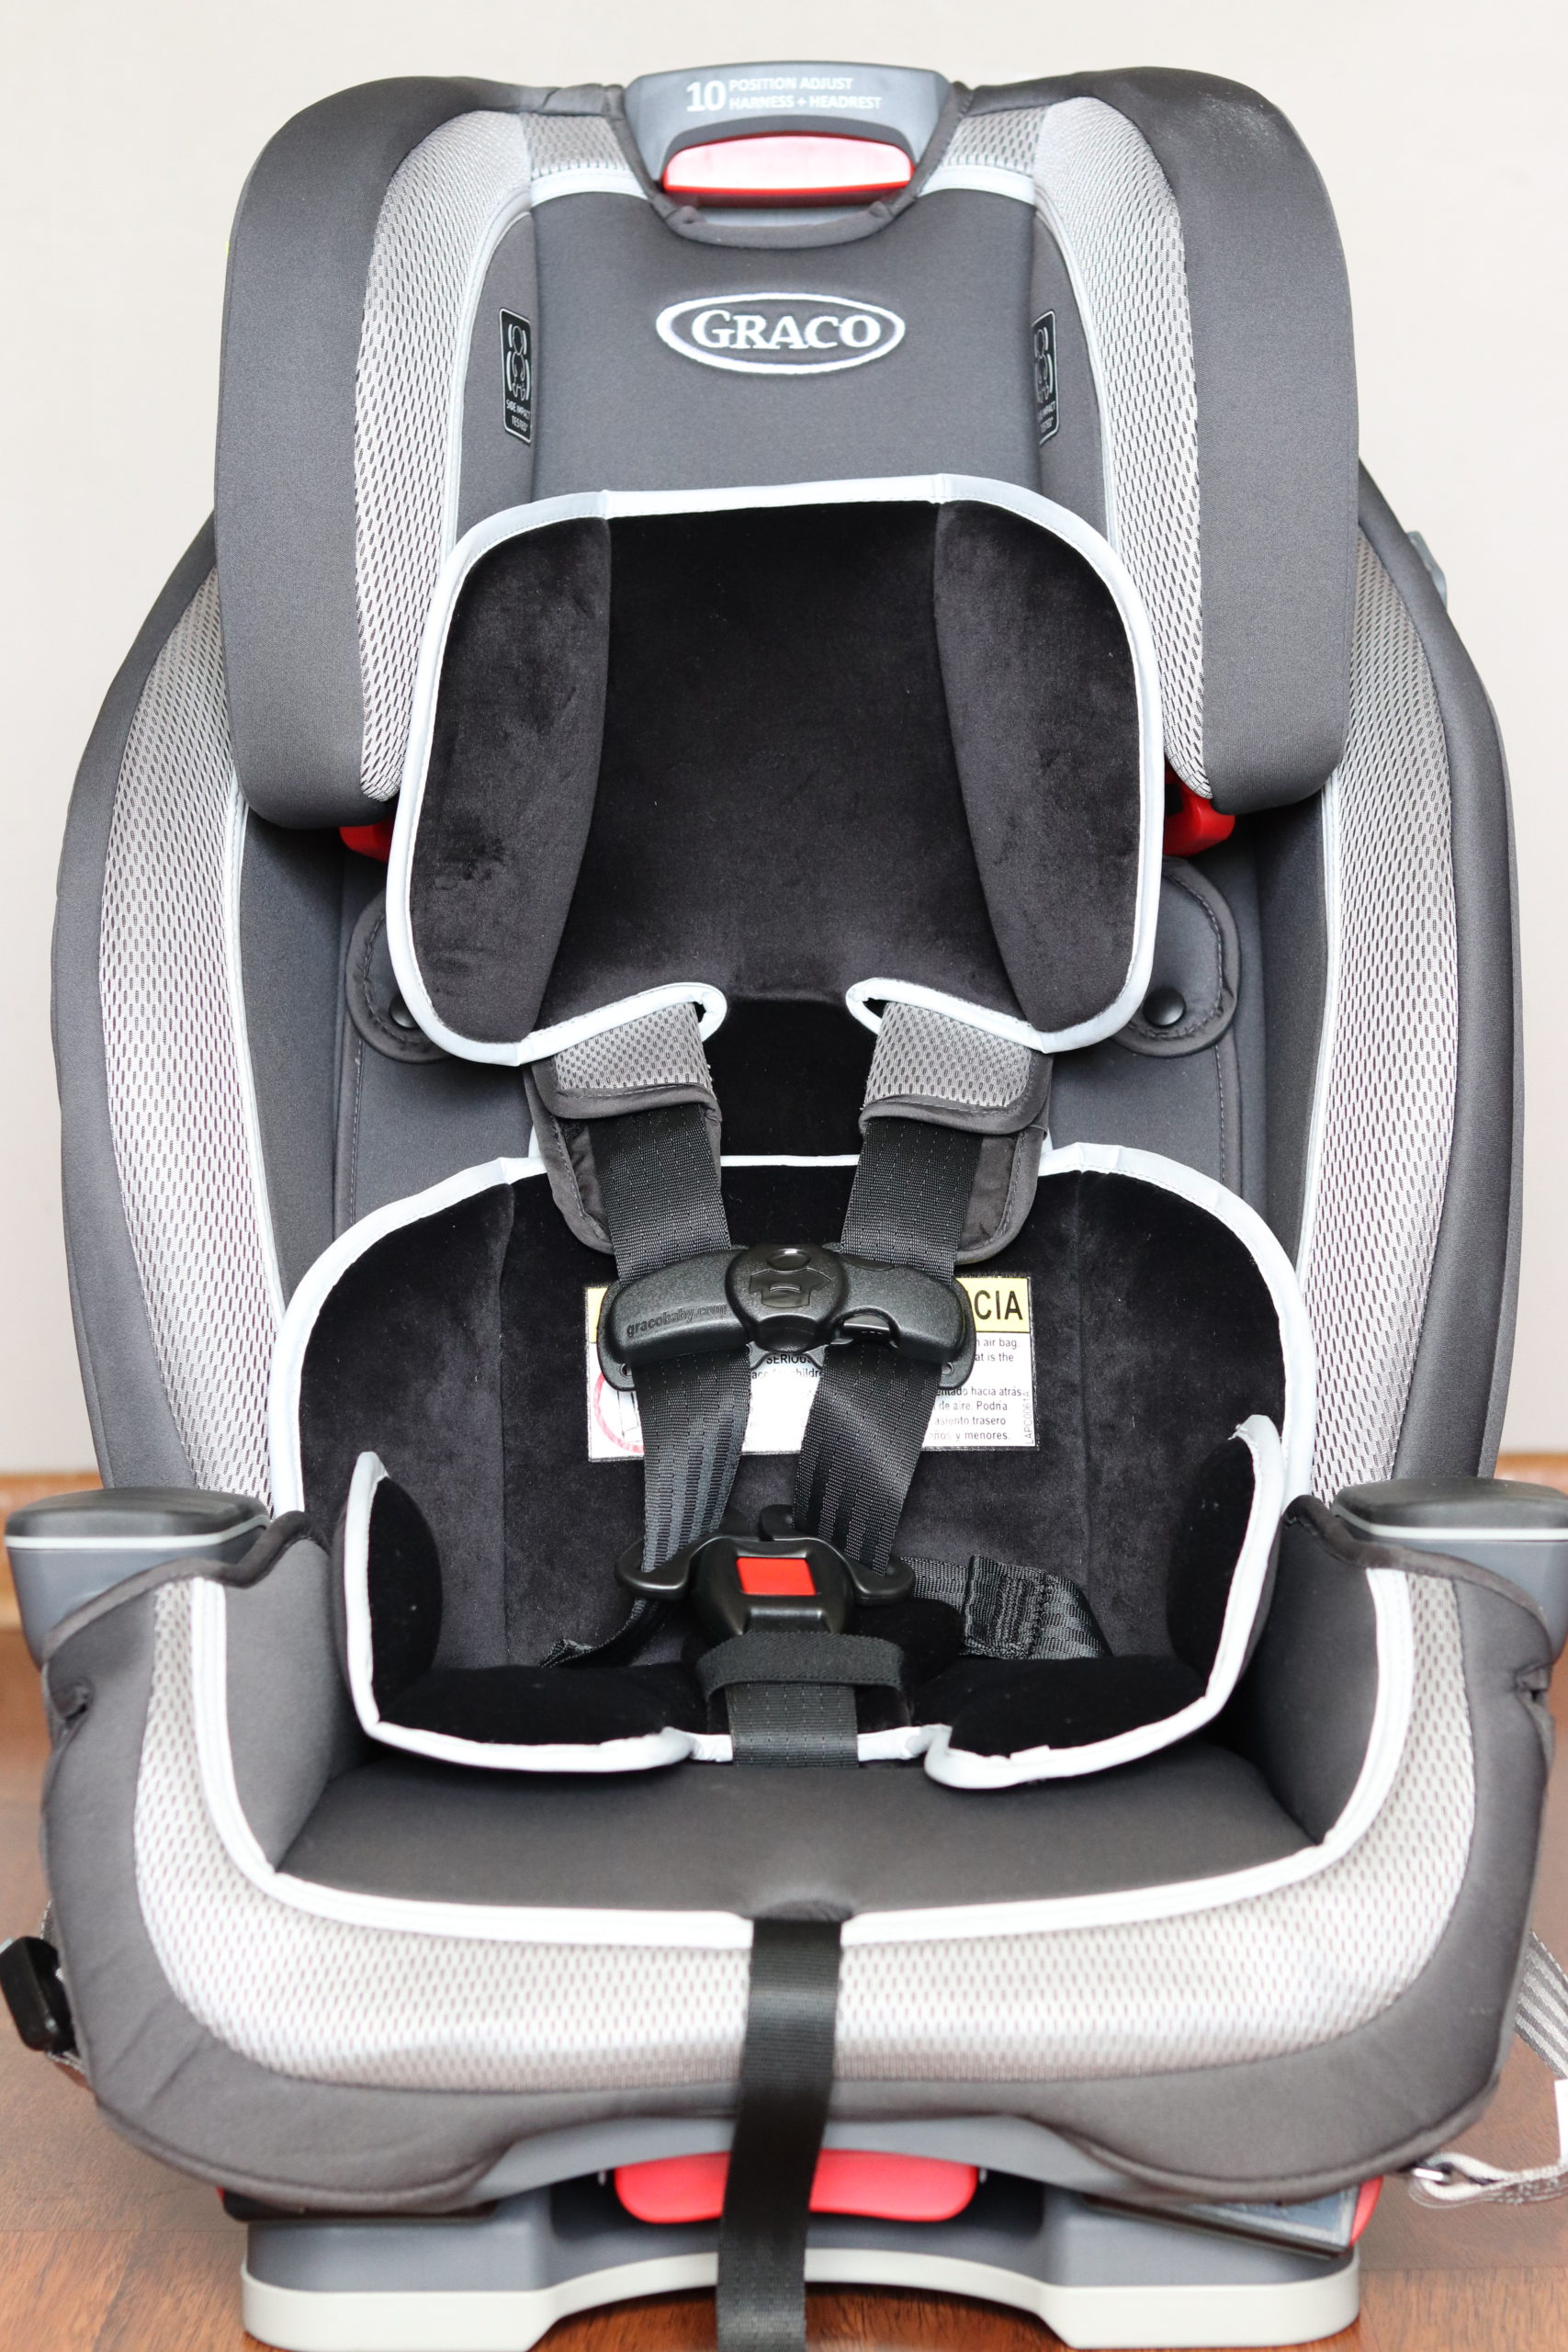 View 25+ Convertible Car Seat Covers For Graco